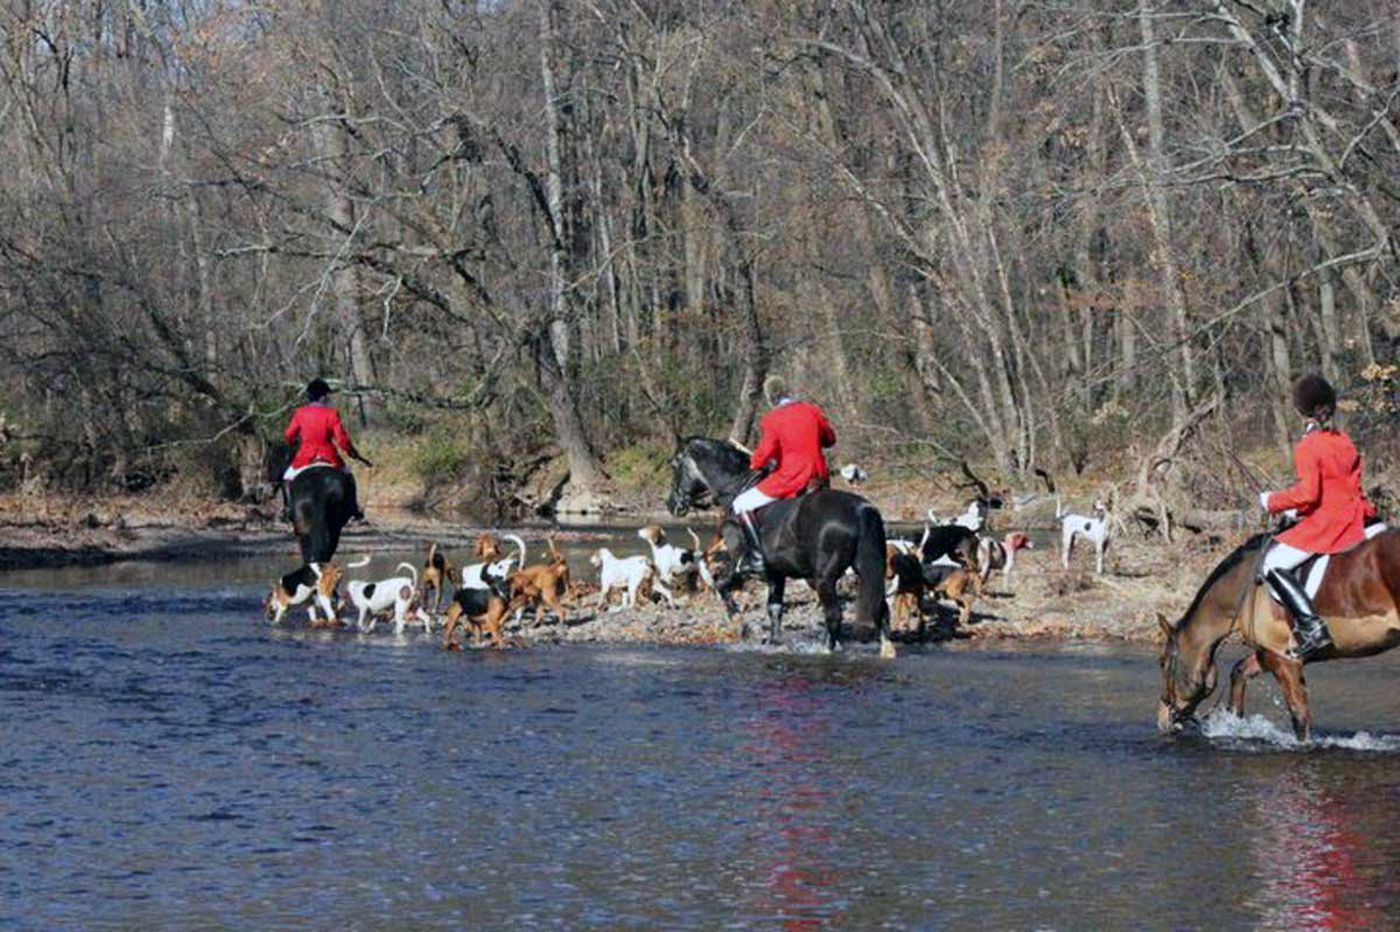 Endangered tradition: Bucks town wants to ban foxhunting